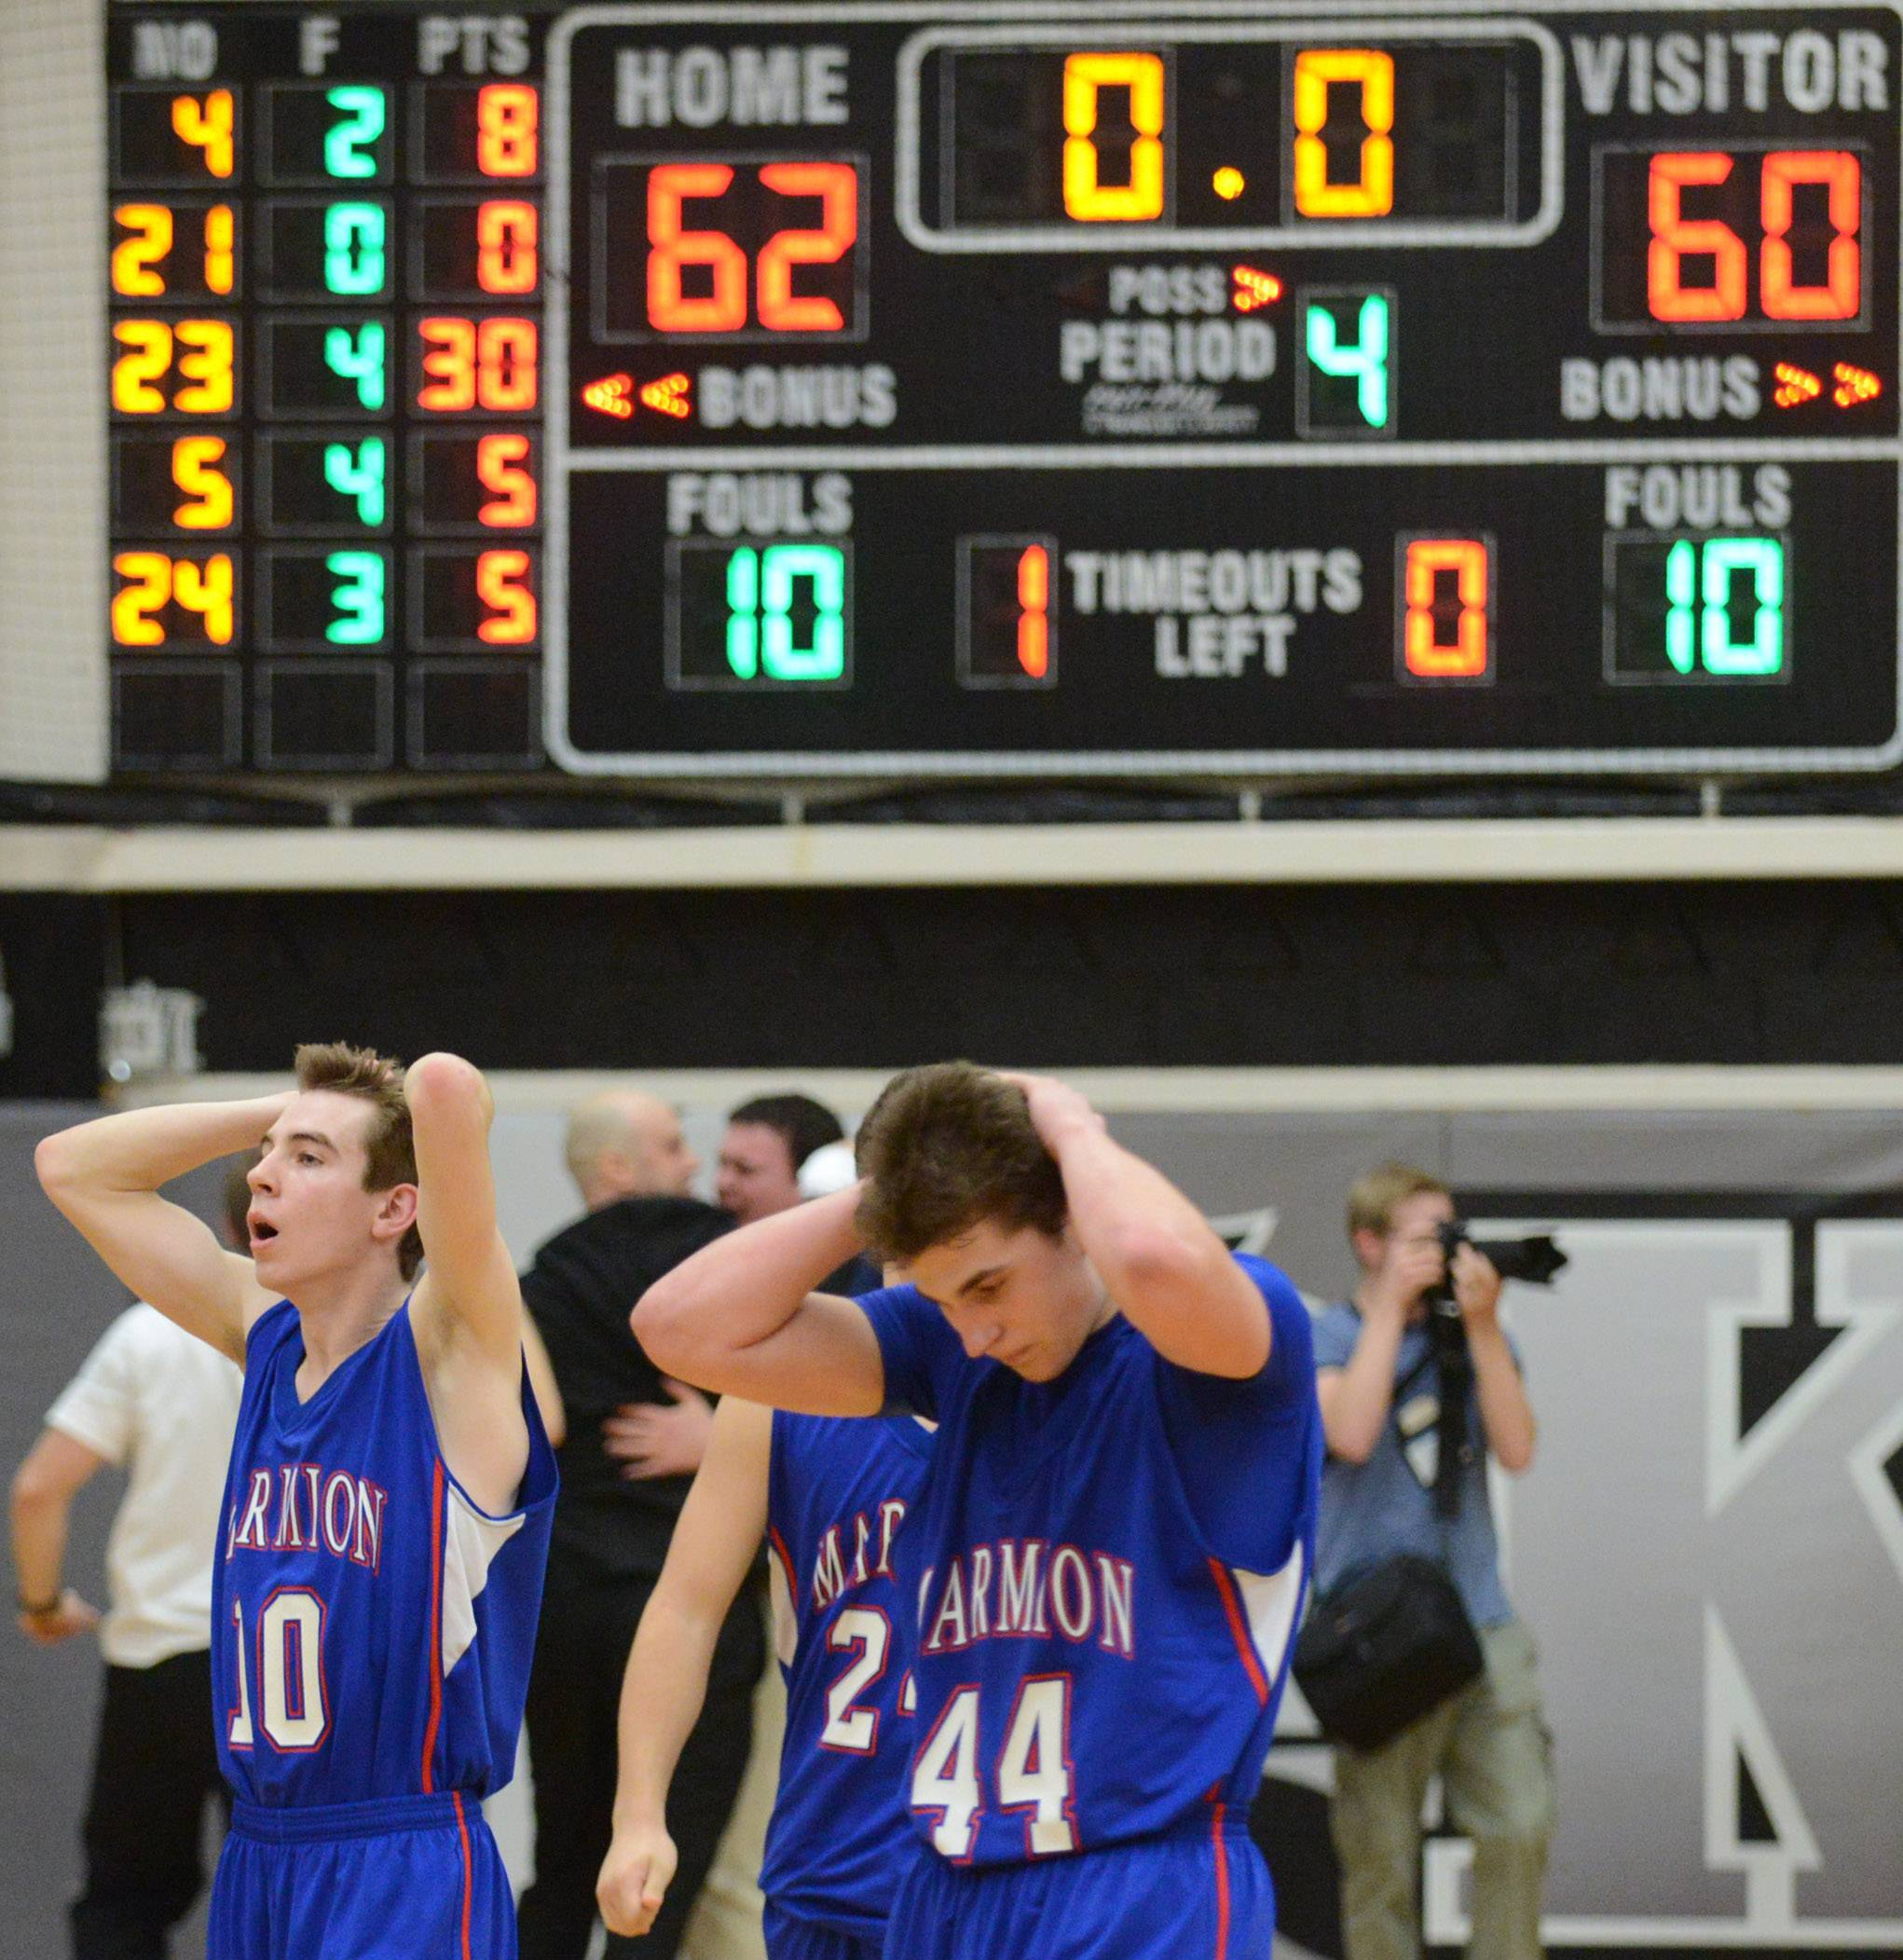 Marmion players, including Michael Sheehan and Danny Bicknell walk off the court after losing on a last-second shot.